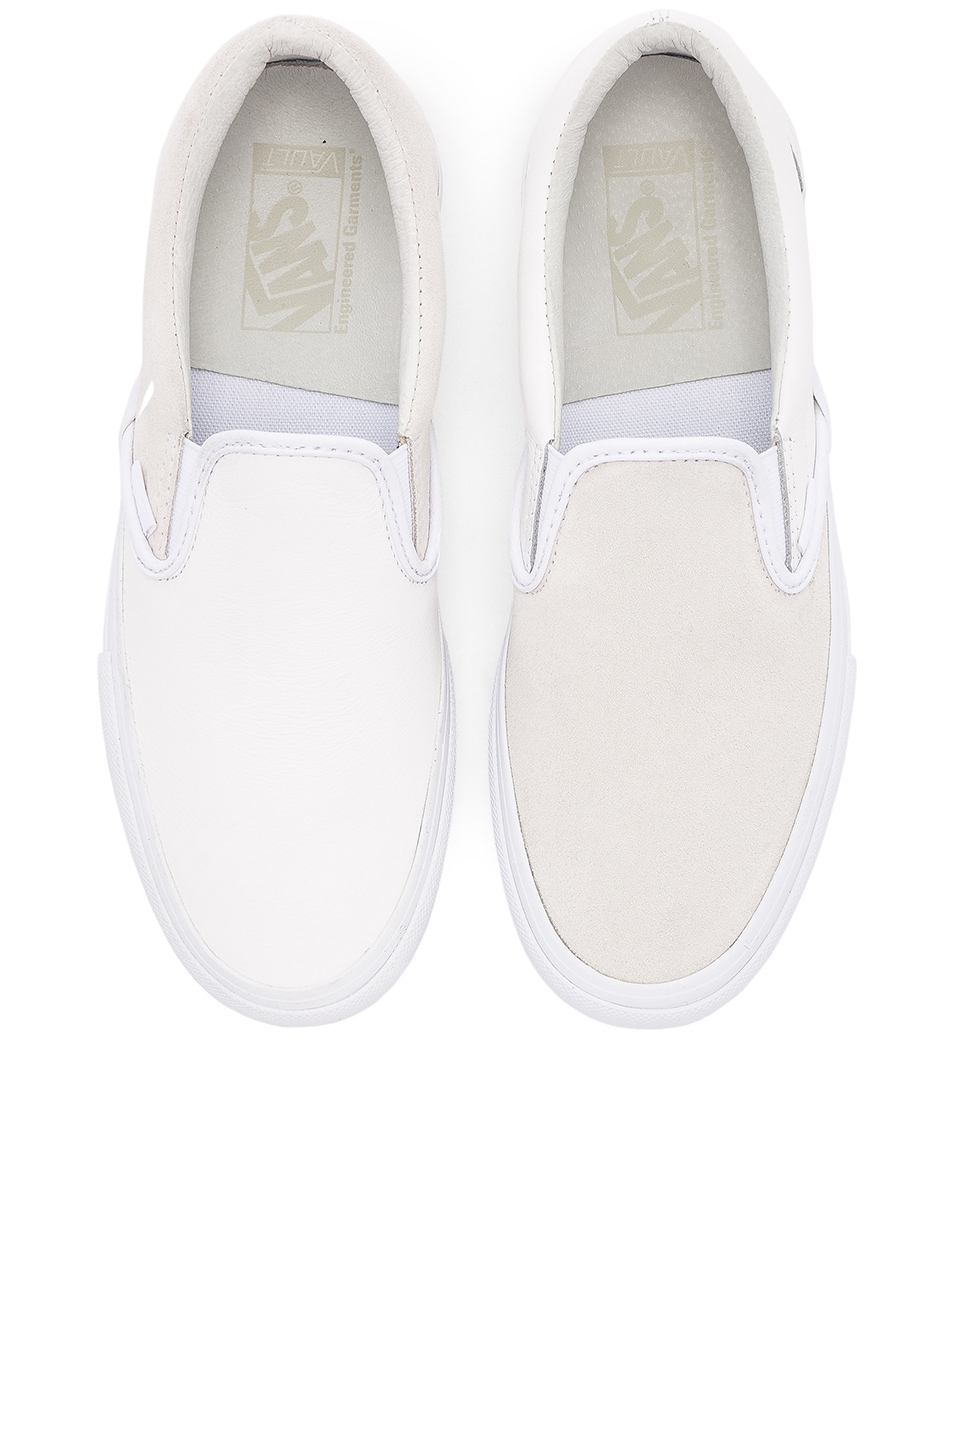 645ee4c8d422 Image 1 of Vans Vault x Engineered Garments Classic Slip On Leather in White